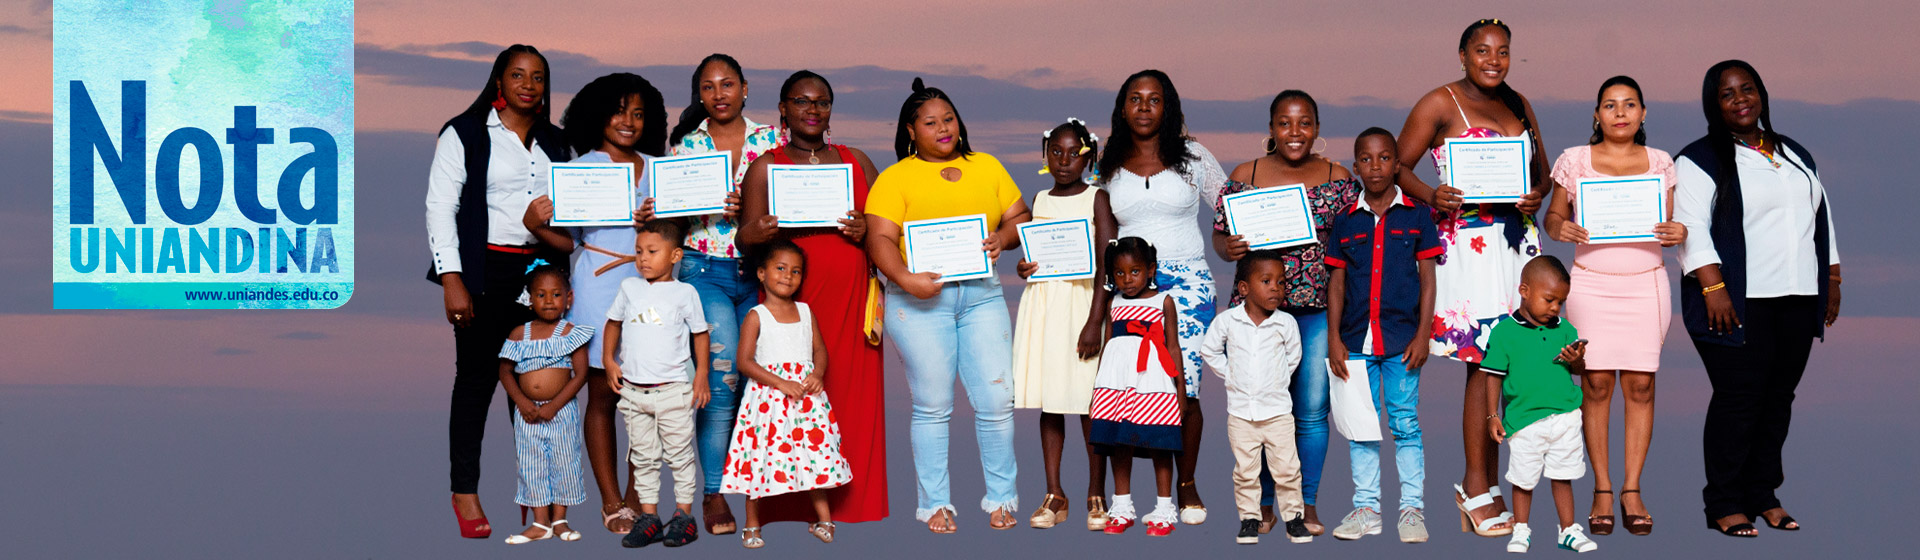 Group of women and their children in a graduation ceremony